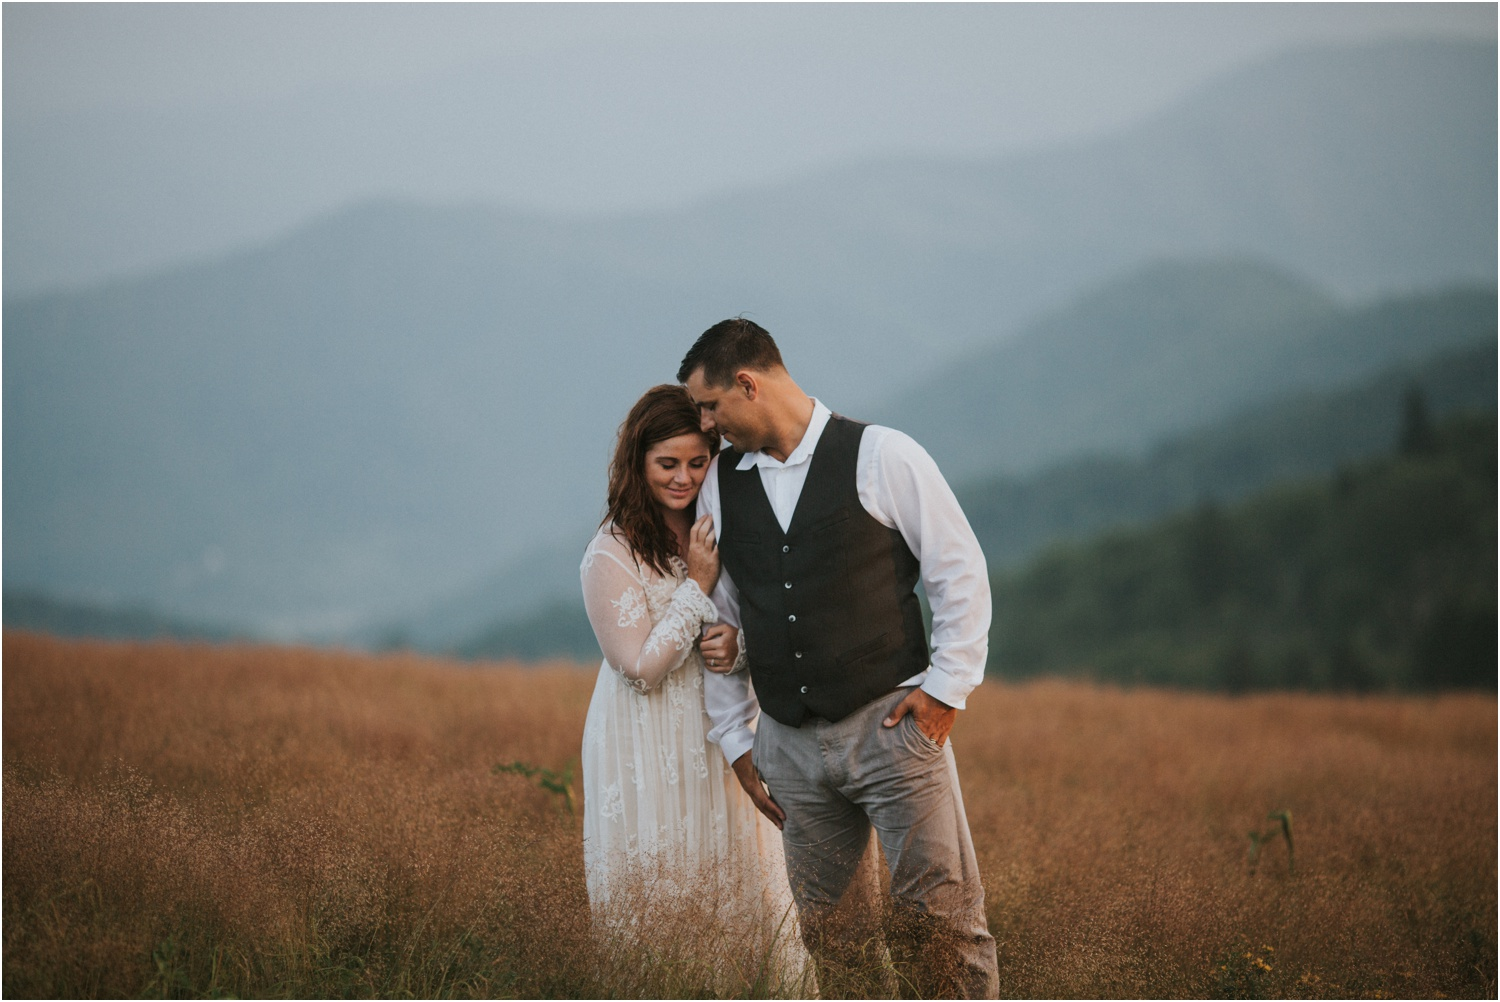 lovestoriesco-asheville-north-carolina-elopement-wedding-50.jpg